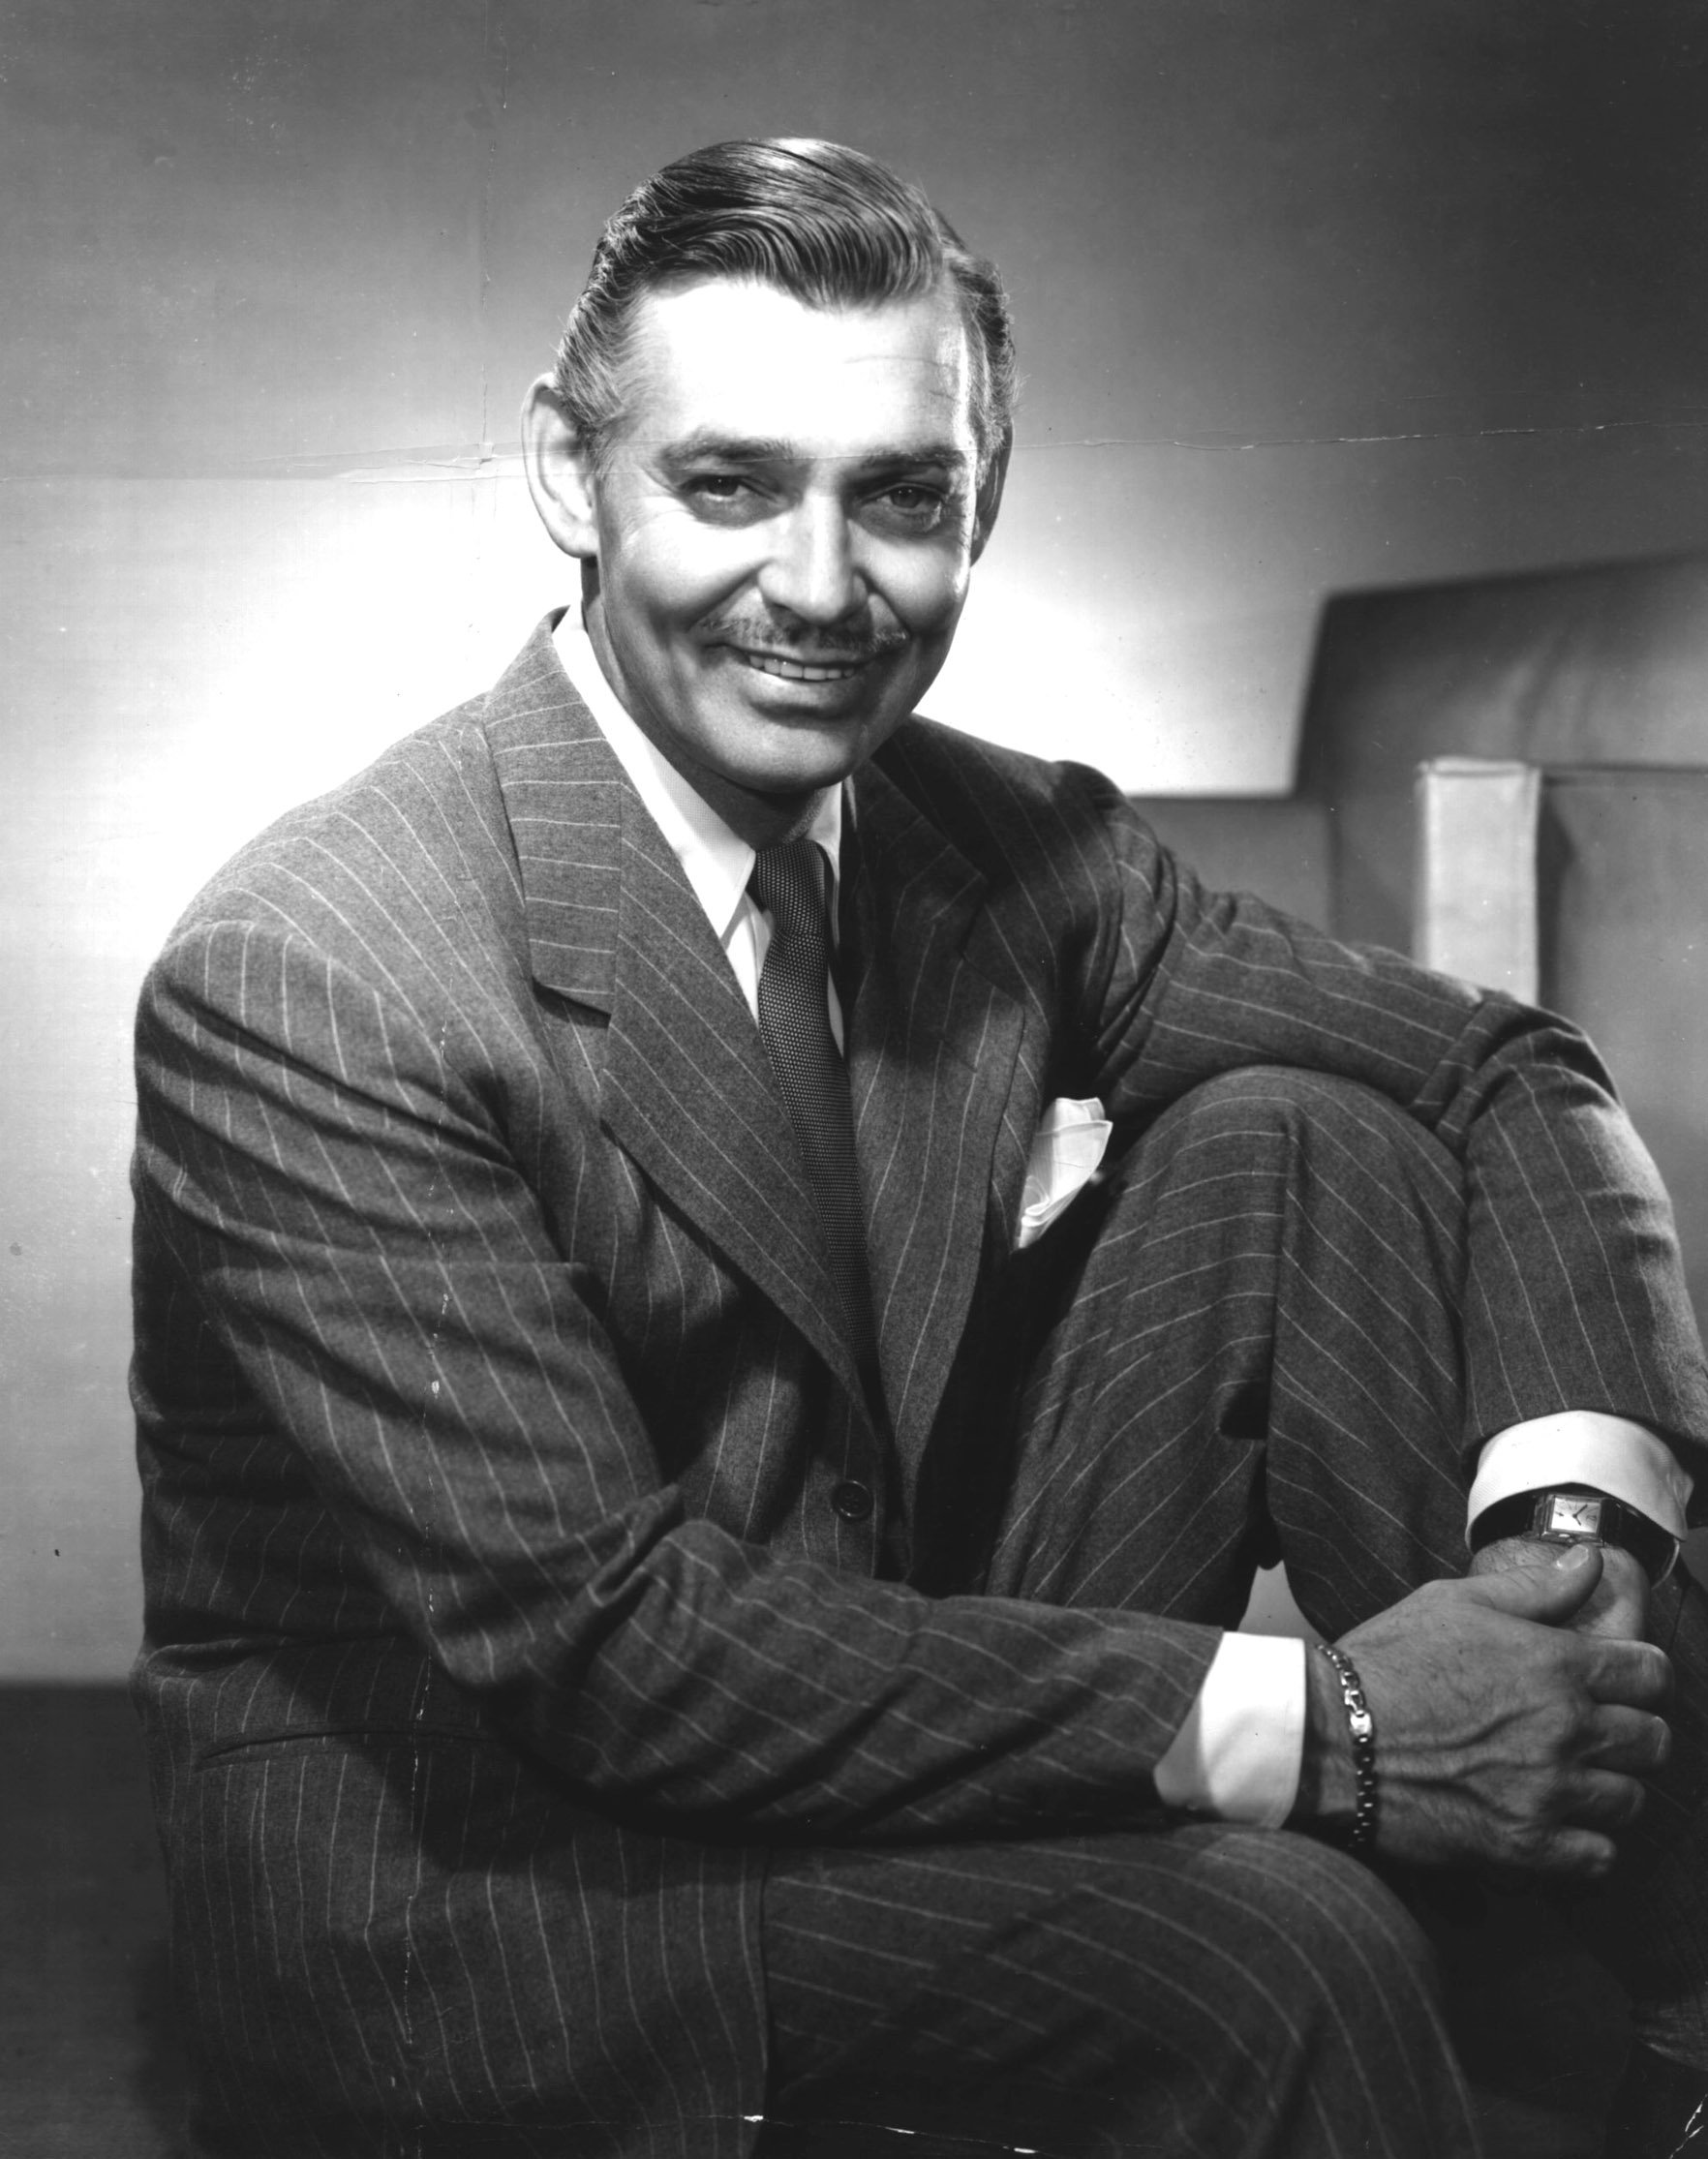 A portrait of American actor Clark Gable (1901-1960) c. 1940. | Source: Getty Images.